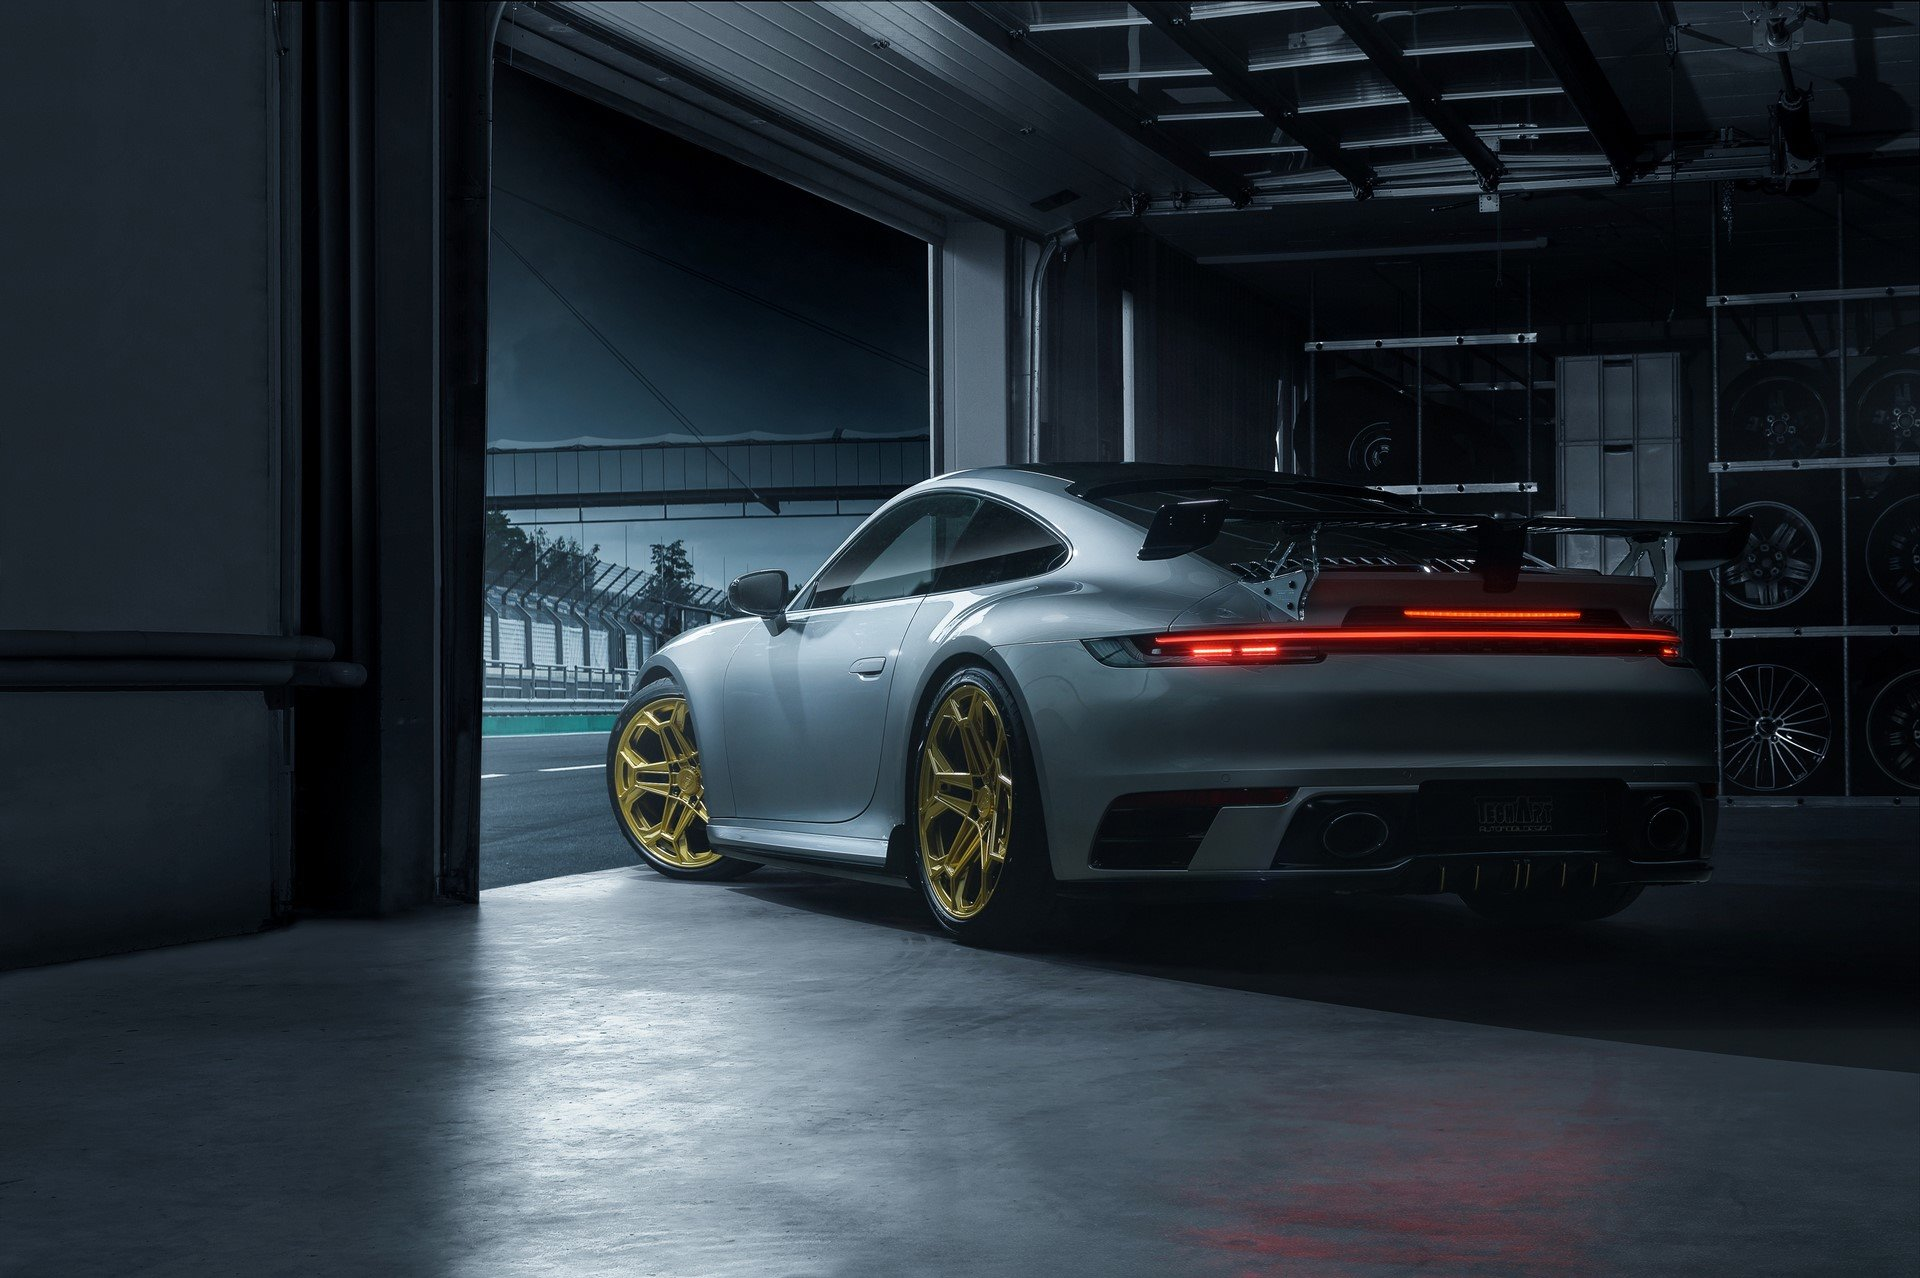 Porsche-911-Carrera-4S-by-TechArt-5